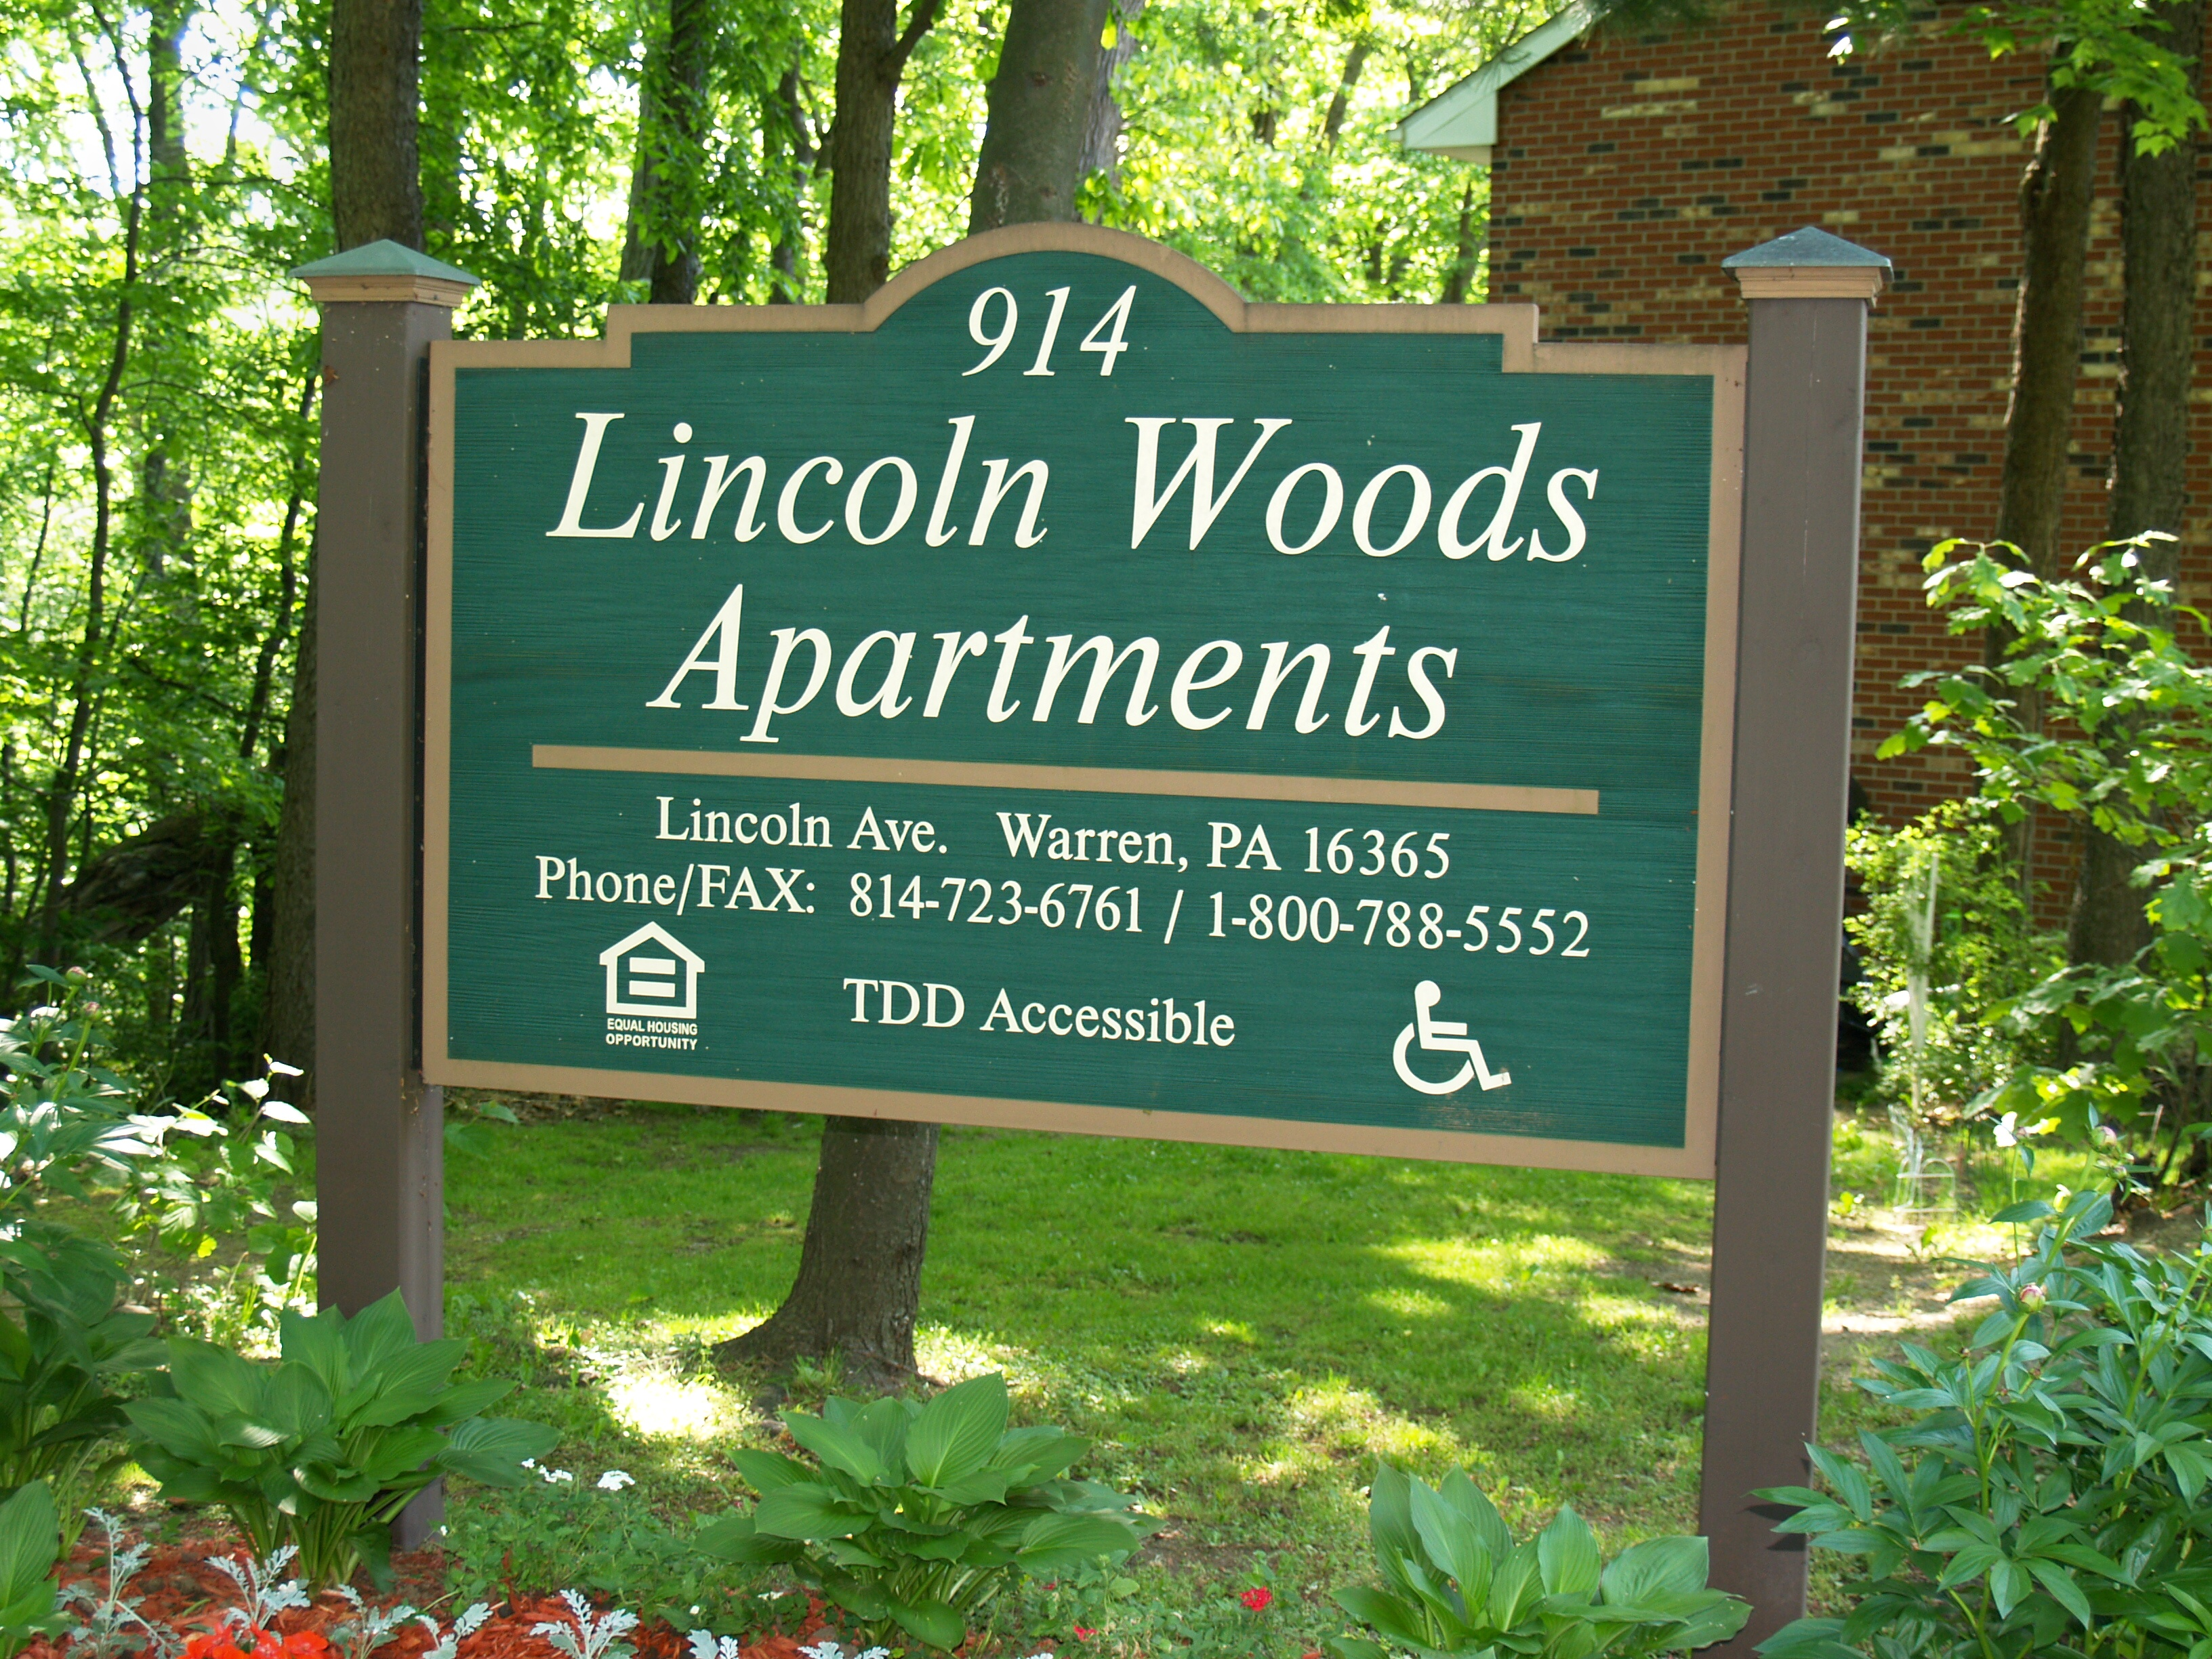 Image of Lincoln Woods Apartments